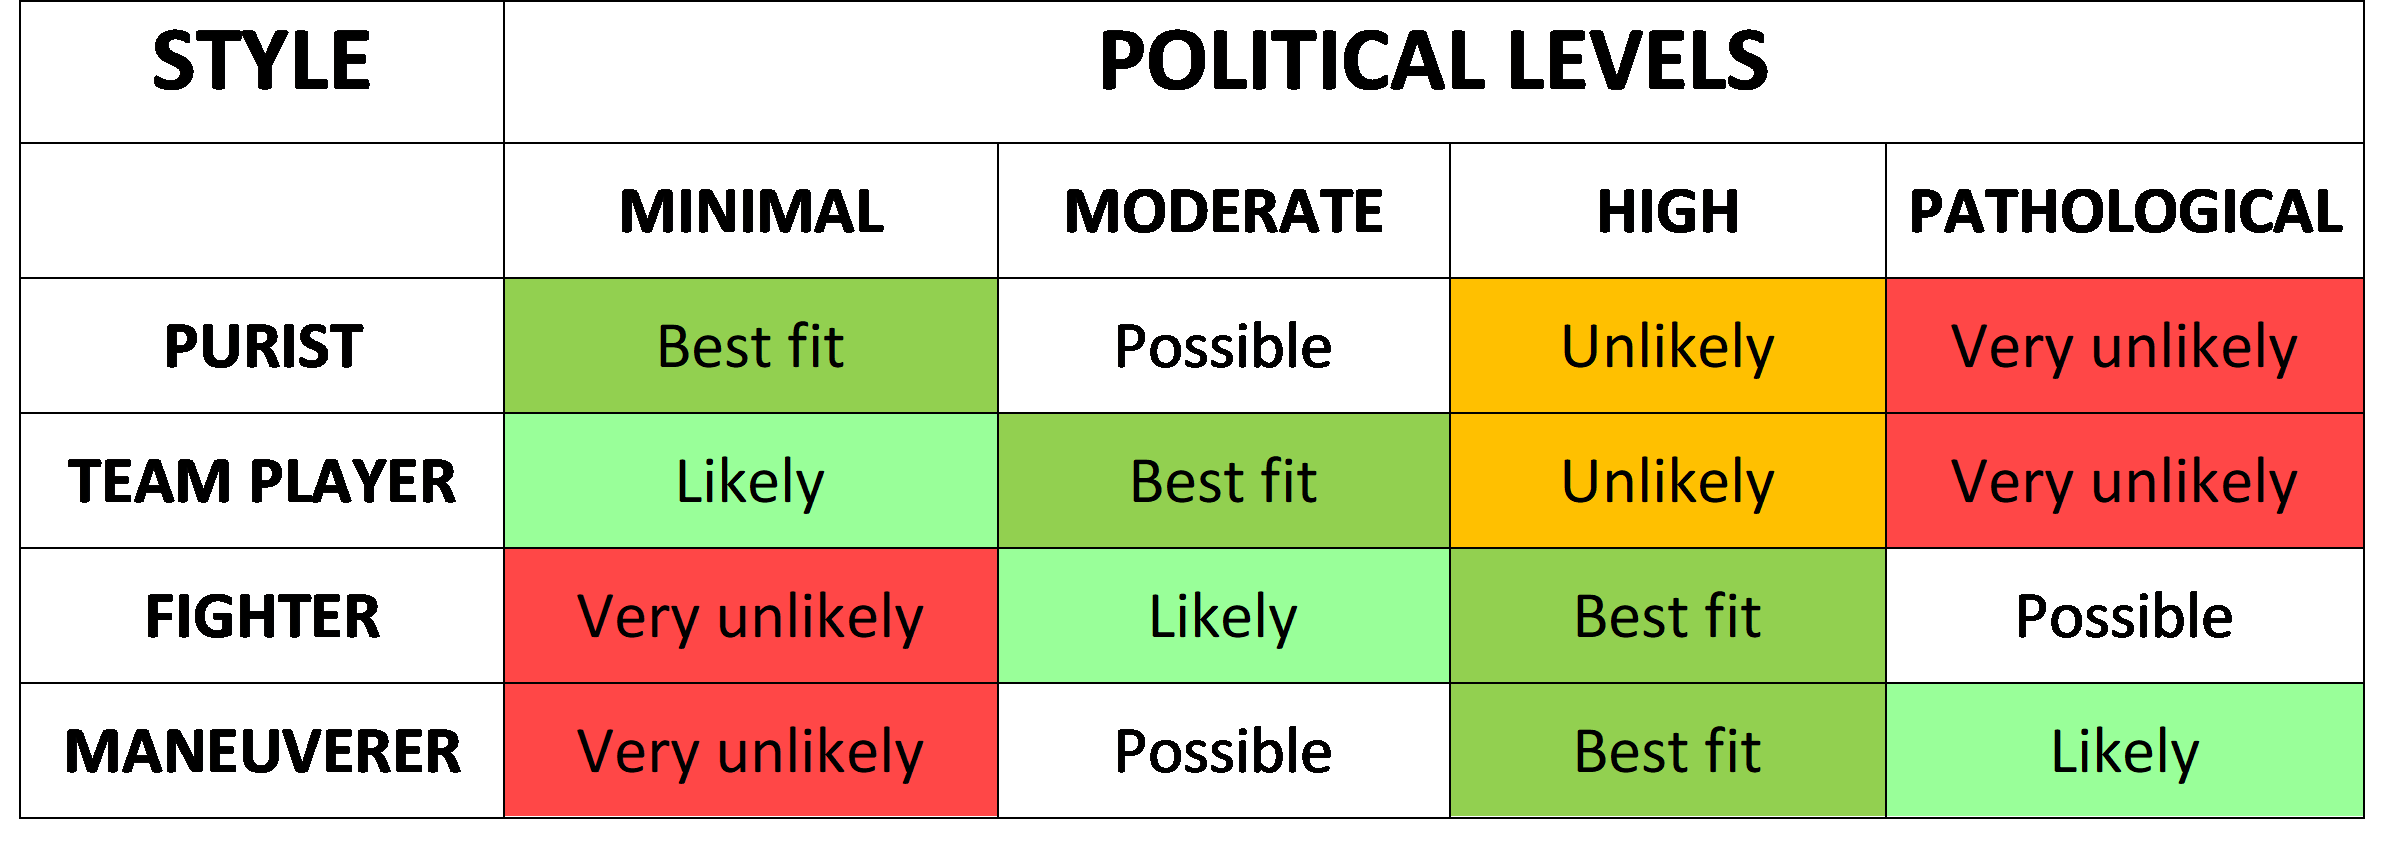 table matchin organizational political levels with people's political styles